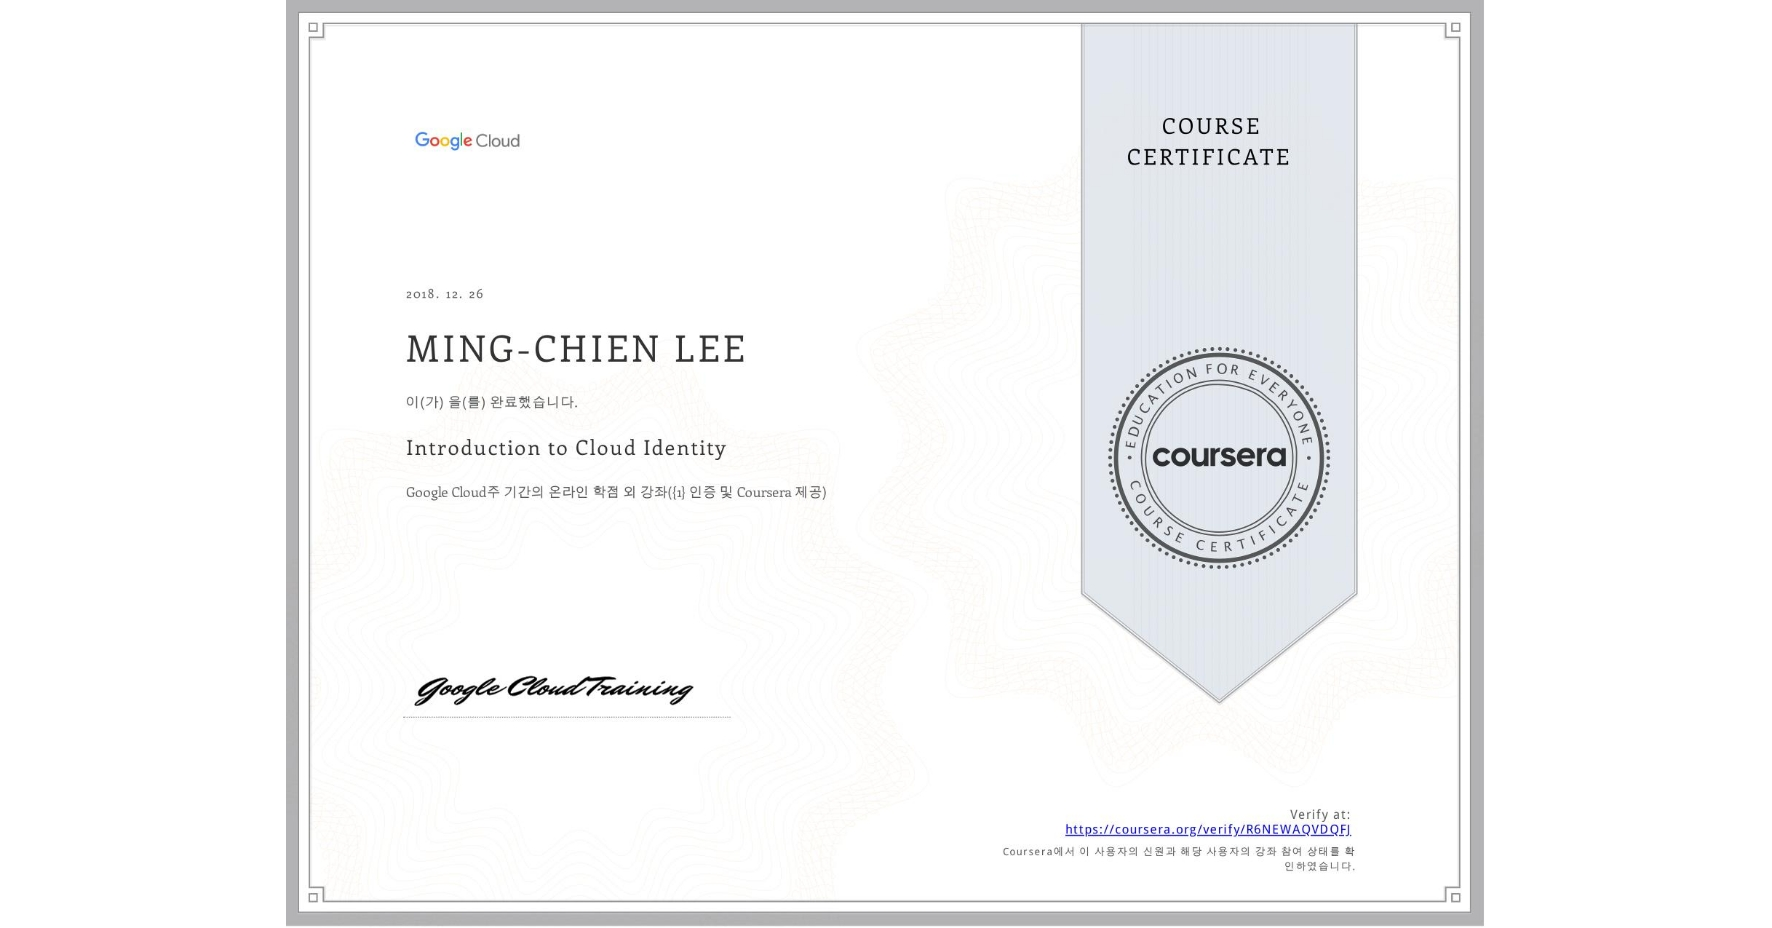 View certificate for MING-CHIEN LEE, Introduction to Cloud Identity, an online non-credit course authorized by Google Cloud and offered through Coursera